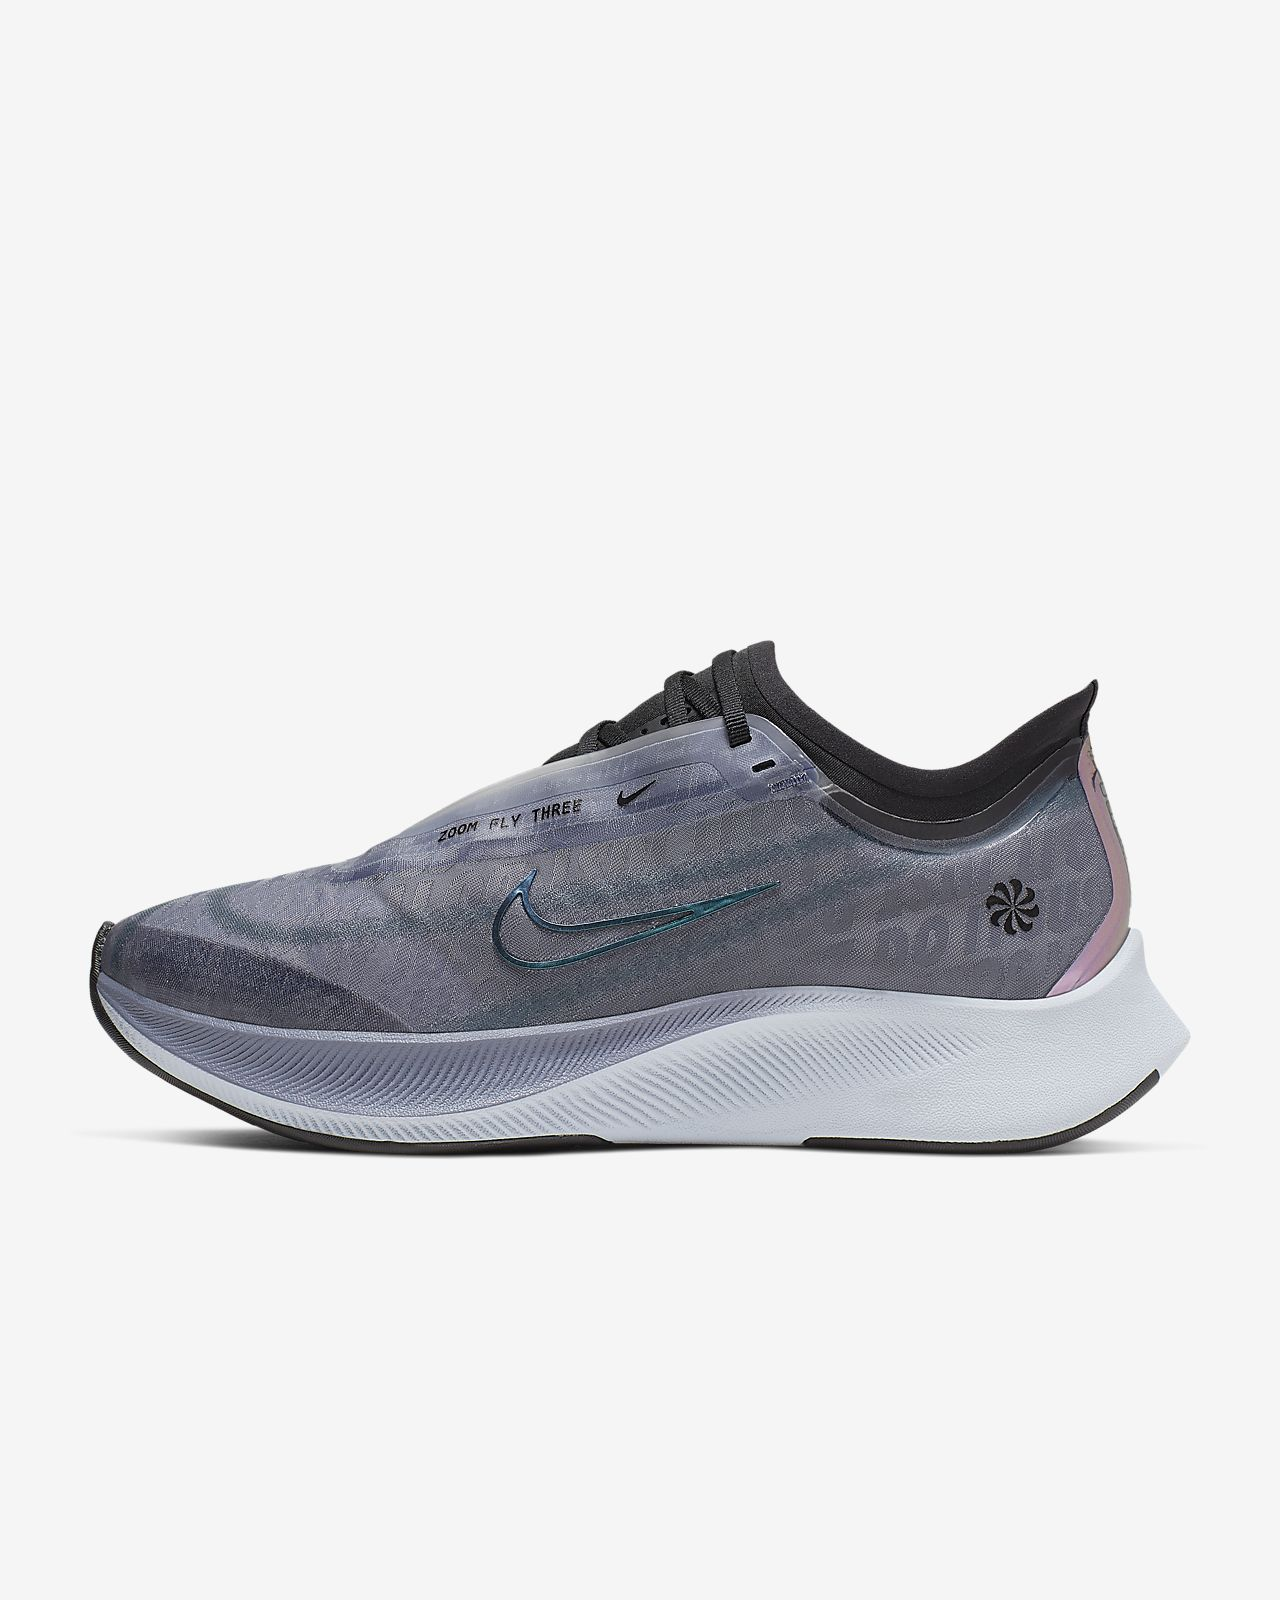 Nike Zoom Fly 3 Rise Women's Running Shoe